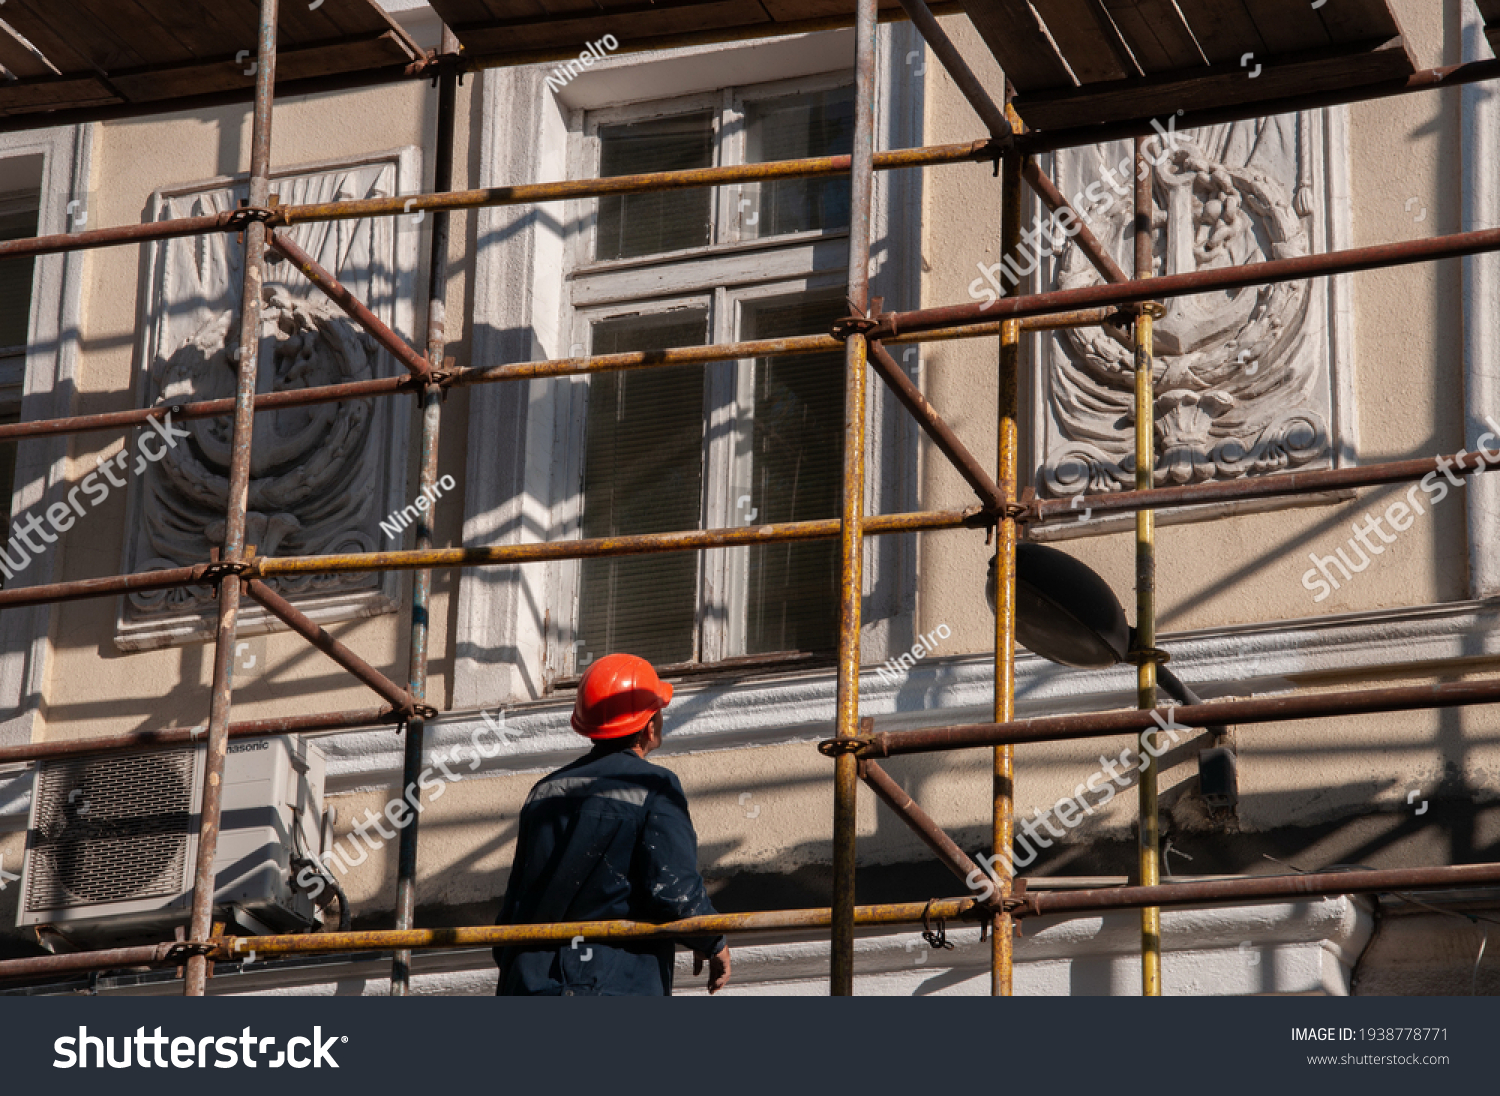 Man builder in orange construction helmet working from scaffolding to renovate historic building wall with ornate sculptural relievo details. Historic building restoration in progress #1938778771